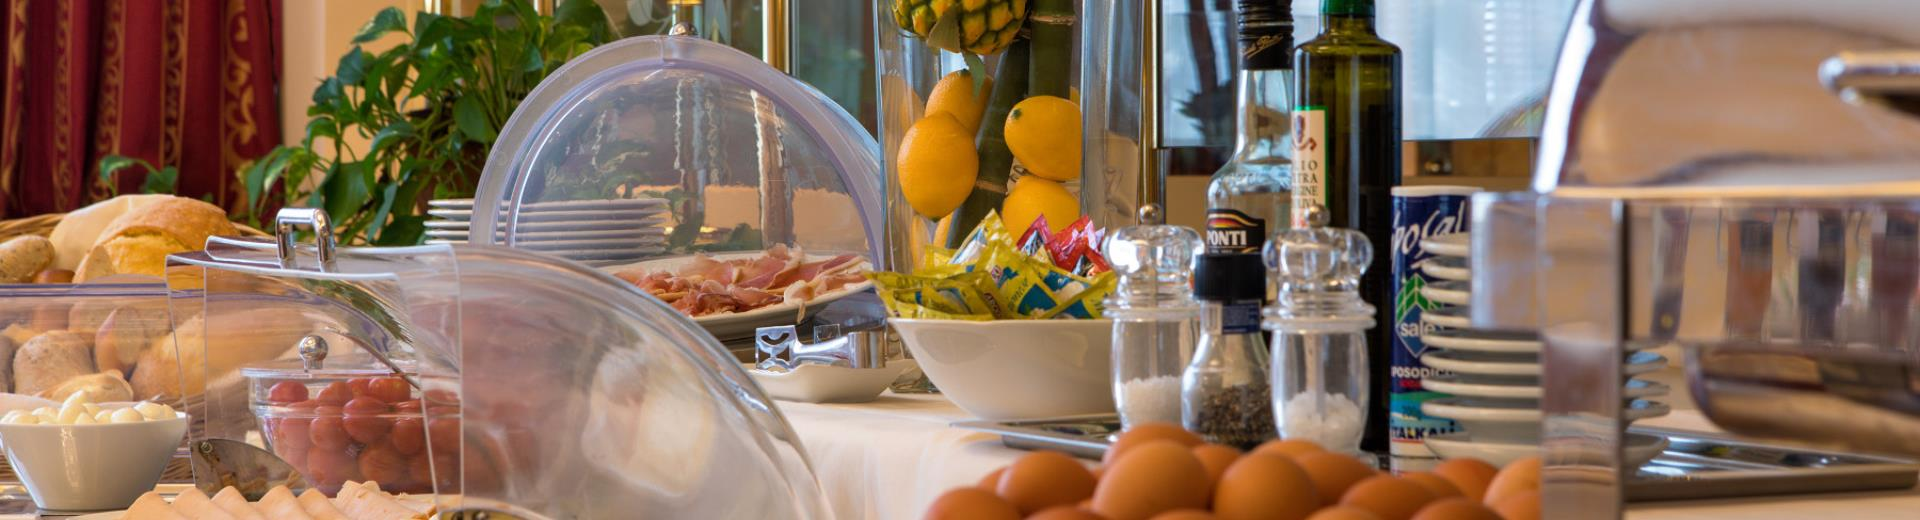 Breakfast - Best Western Gorizia Palace Hotel